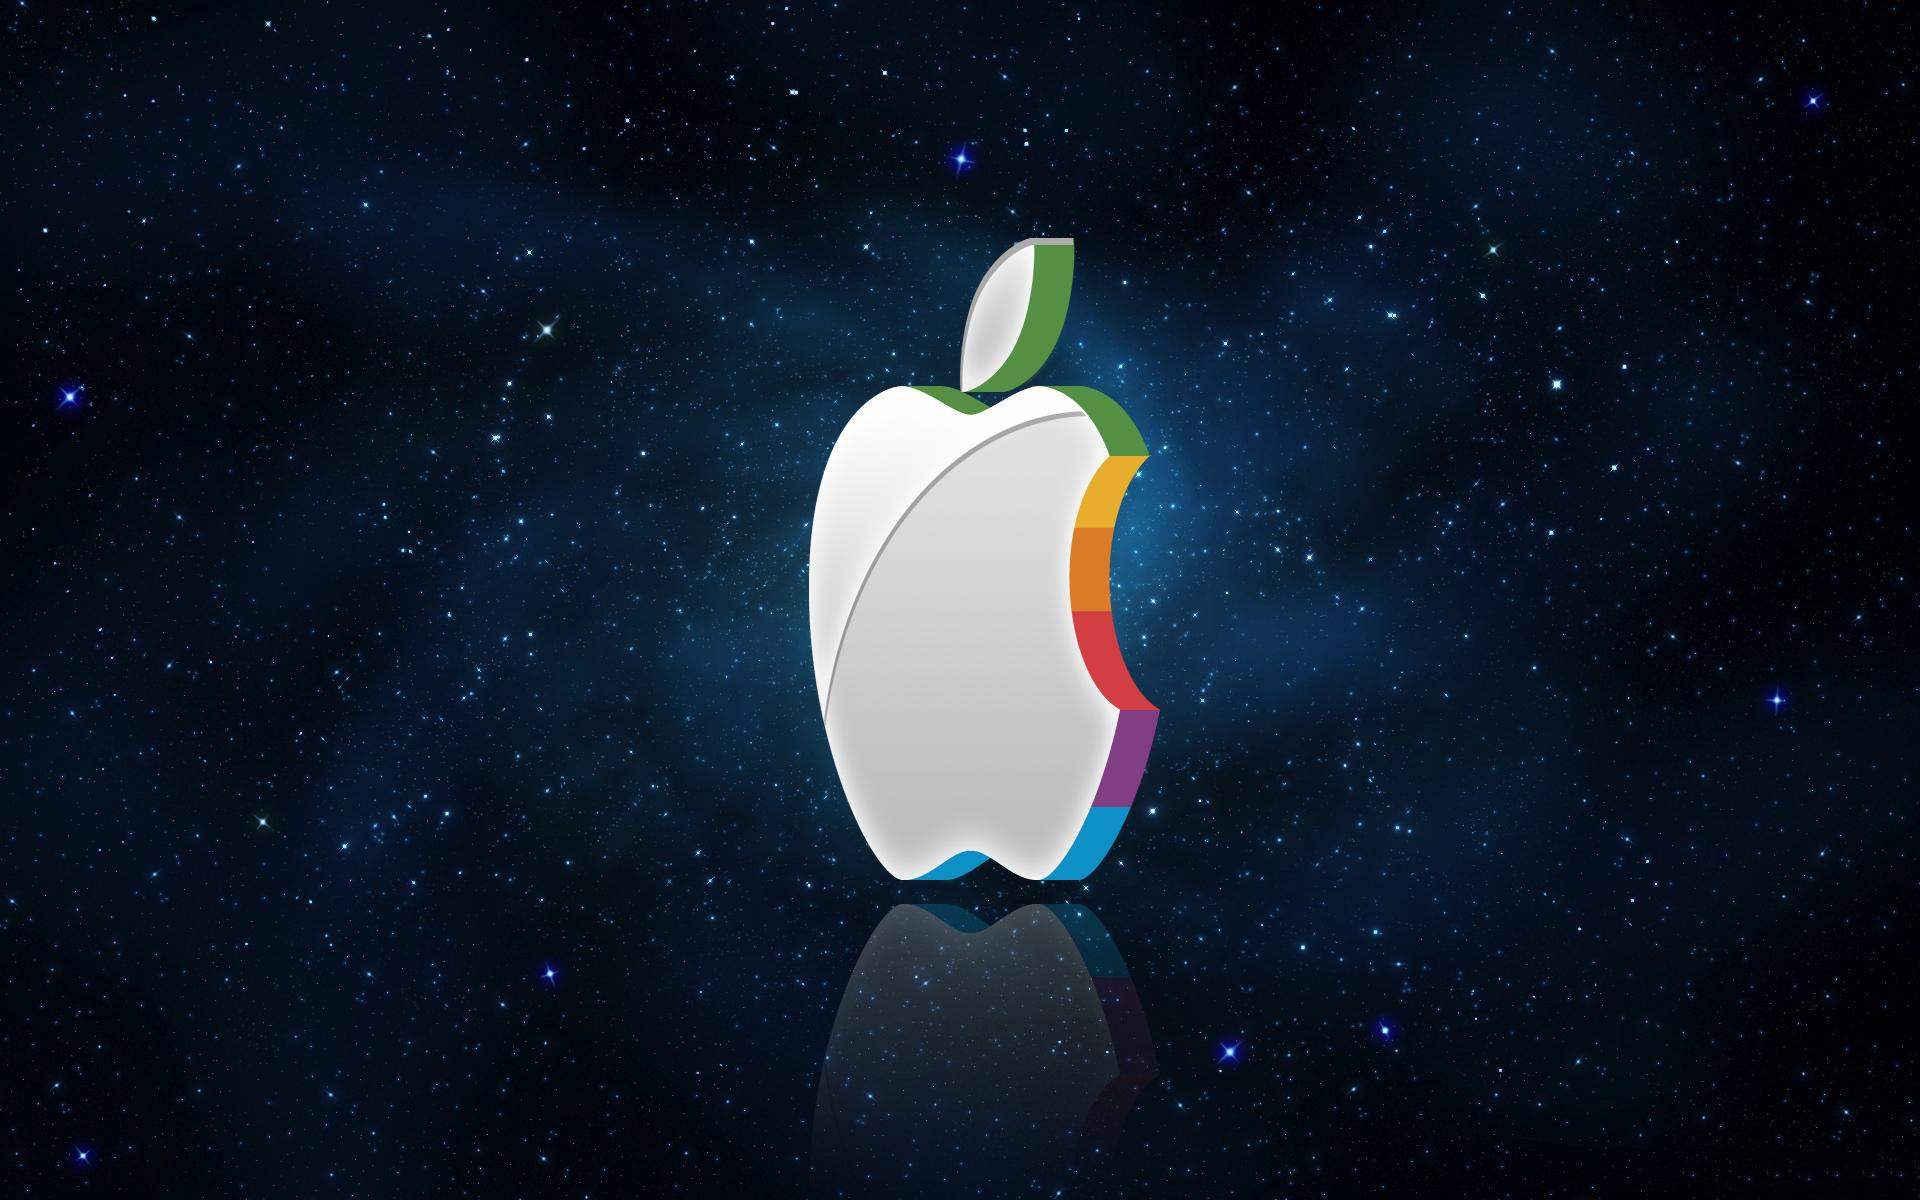 apple 3d wallpapers free download | pixelstalk